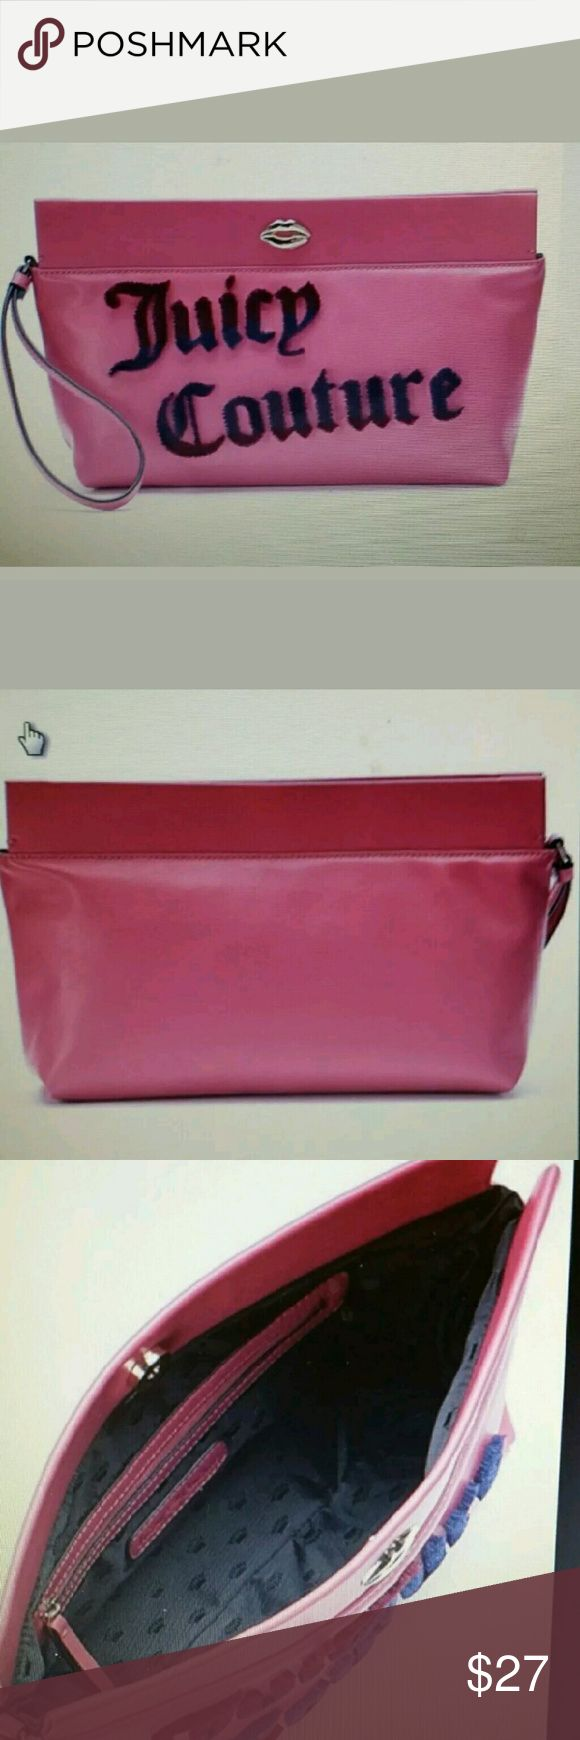 """JUICY COUTURE FLOCKED PINK WOMEN'S WRISTLET/WALLET COLOR:??PINK  MATERIAL:?FAUX LEATHER,  Carry this stylish Juicy Couture wristlet for a fashionable look and ionic flair. This Juicy Couture wristlet features Juicy Couture logo. Product details 7.5"""" H x 12.5"""" W x 3.25"""" D Approx. Wrist strap, Magnetic snap closure. Interior zip pocket. Juicy Couture Bags Clutches & Wristlets"""